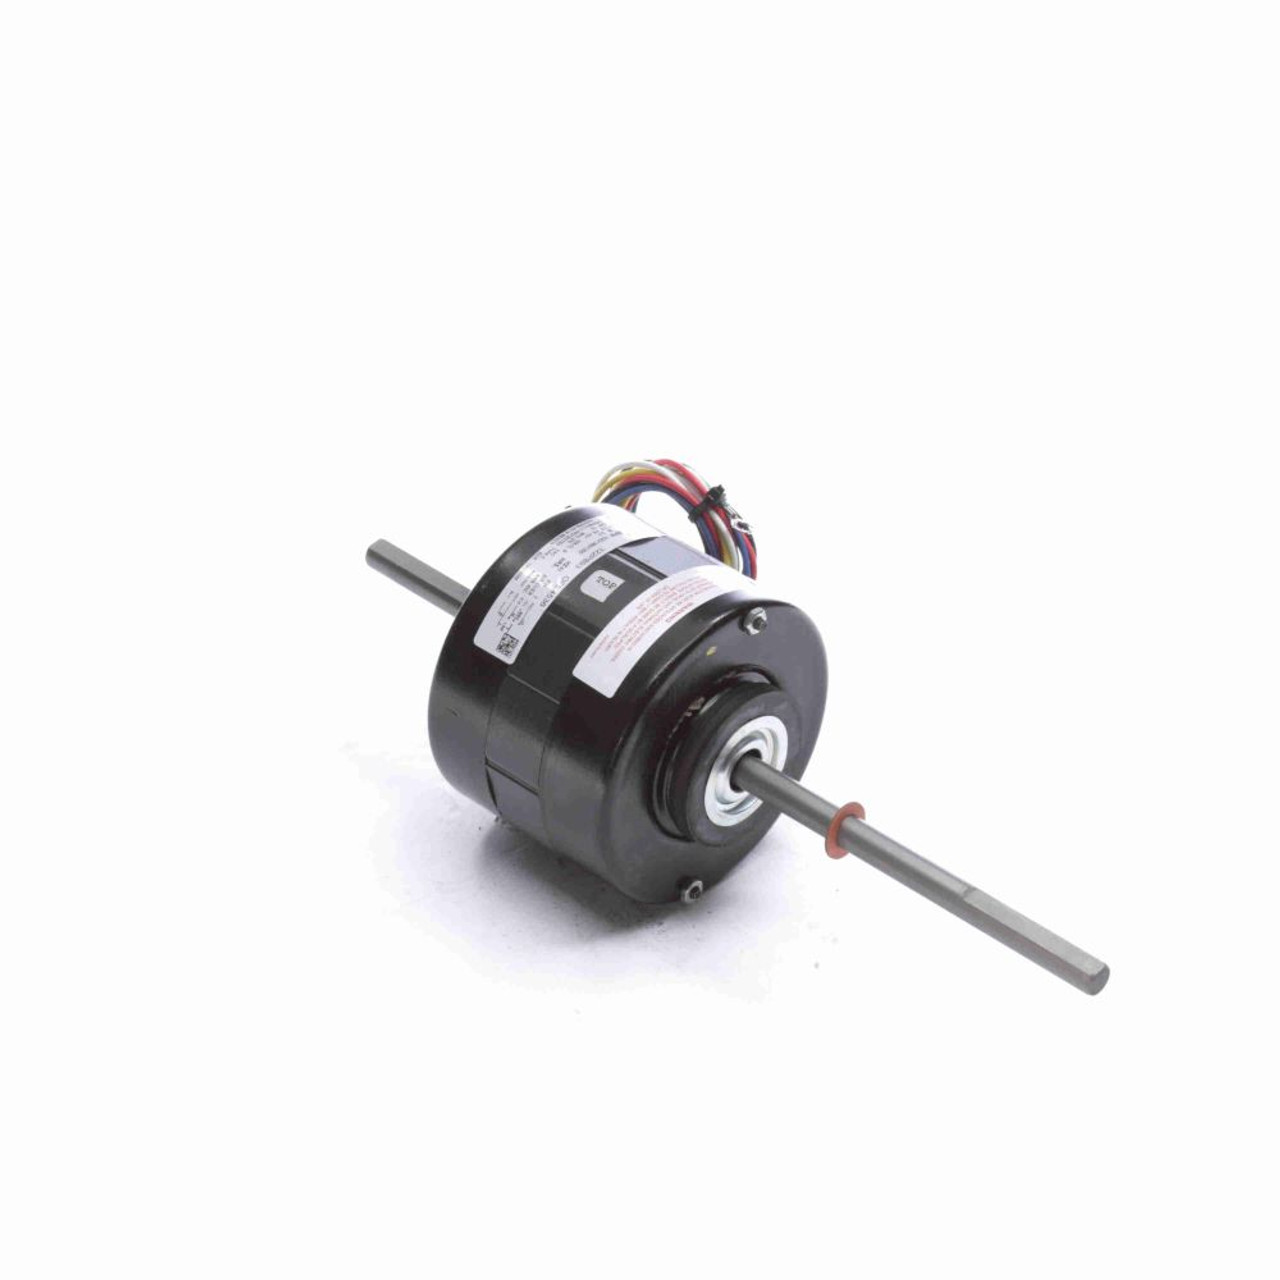 small resolution of fedders 322p893 hvac motor 1 6 hp 1625 rpm 3 speed 115v century ofe4536